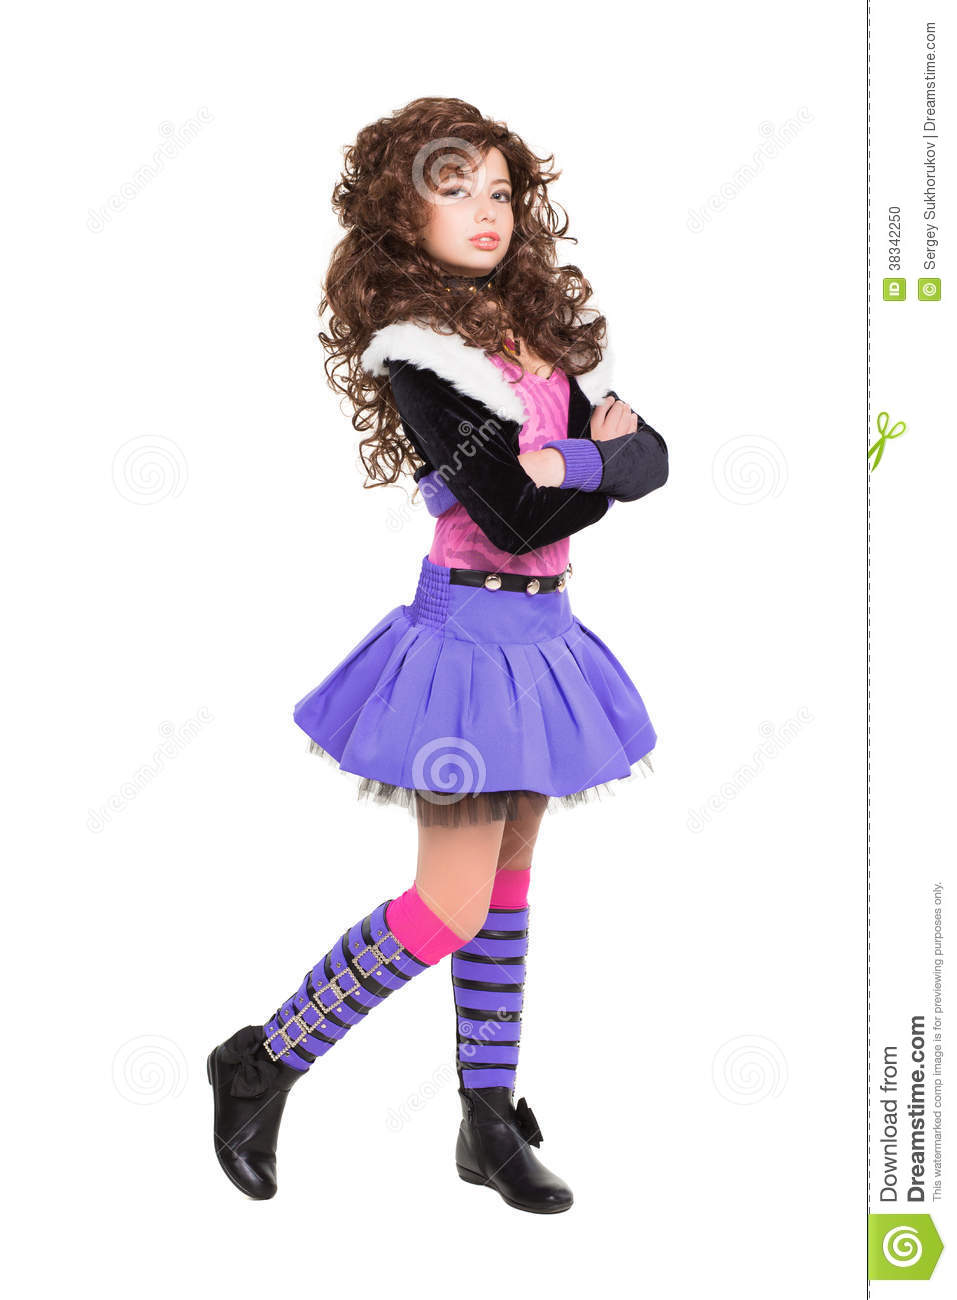 fashionable little girl stock photo image 38342250